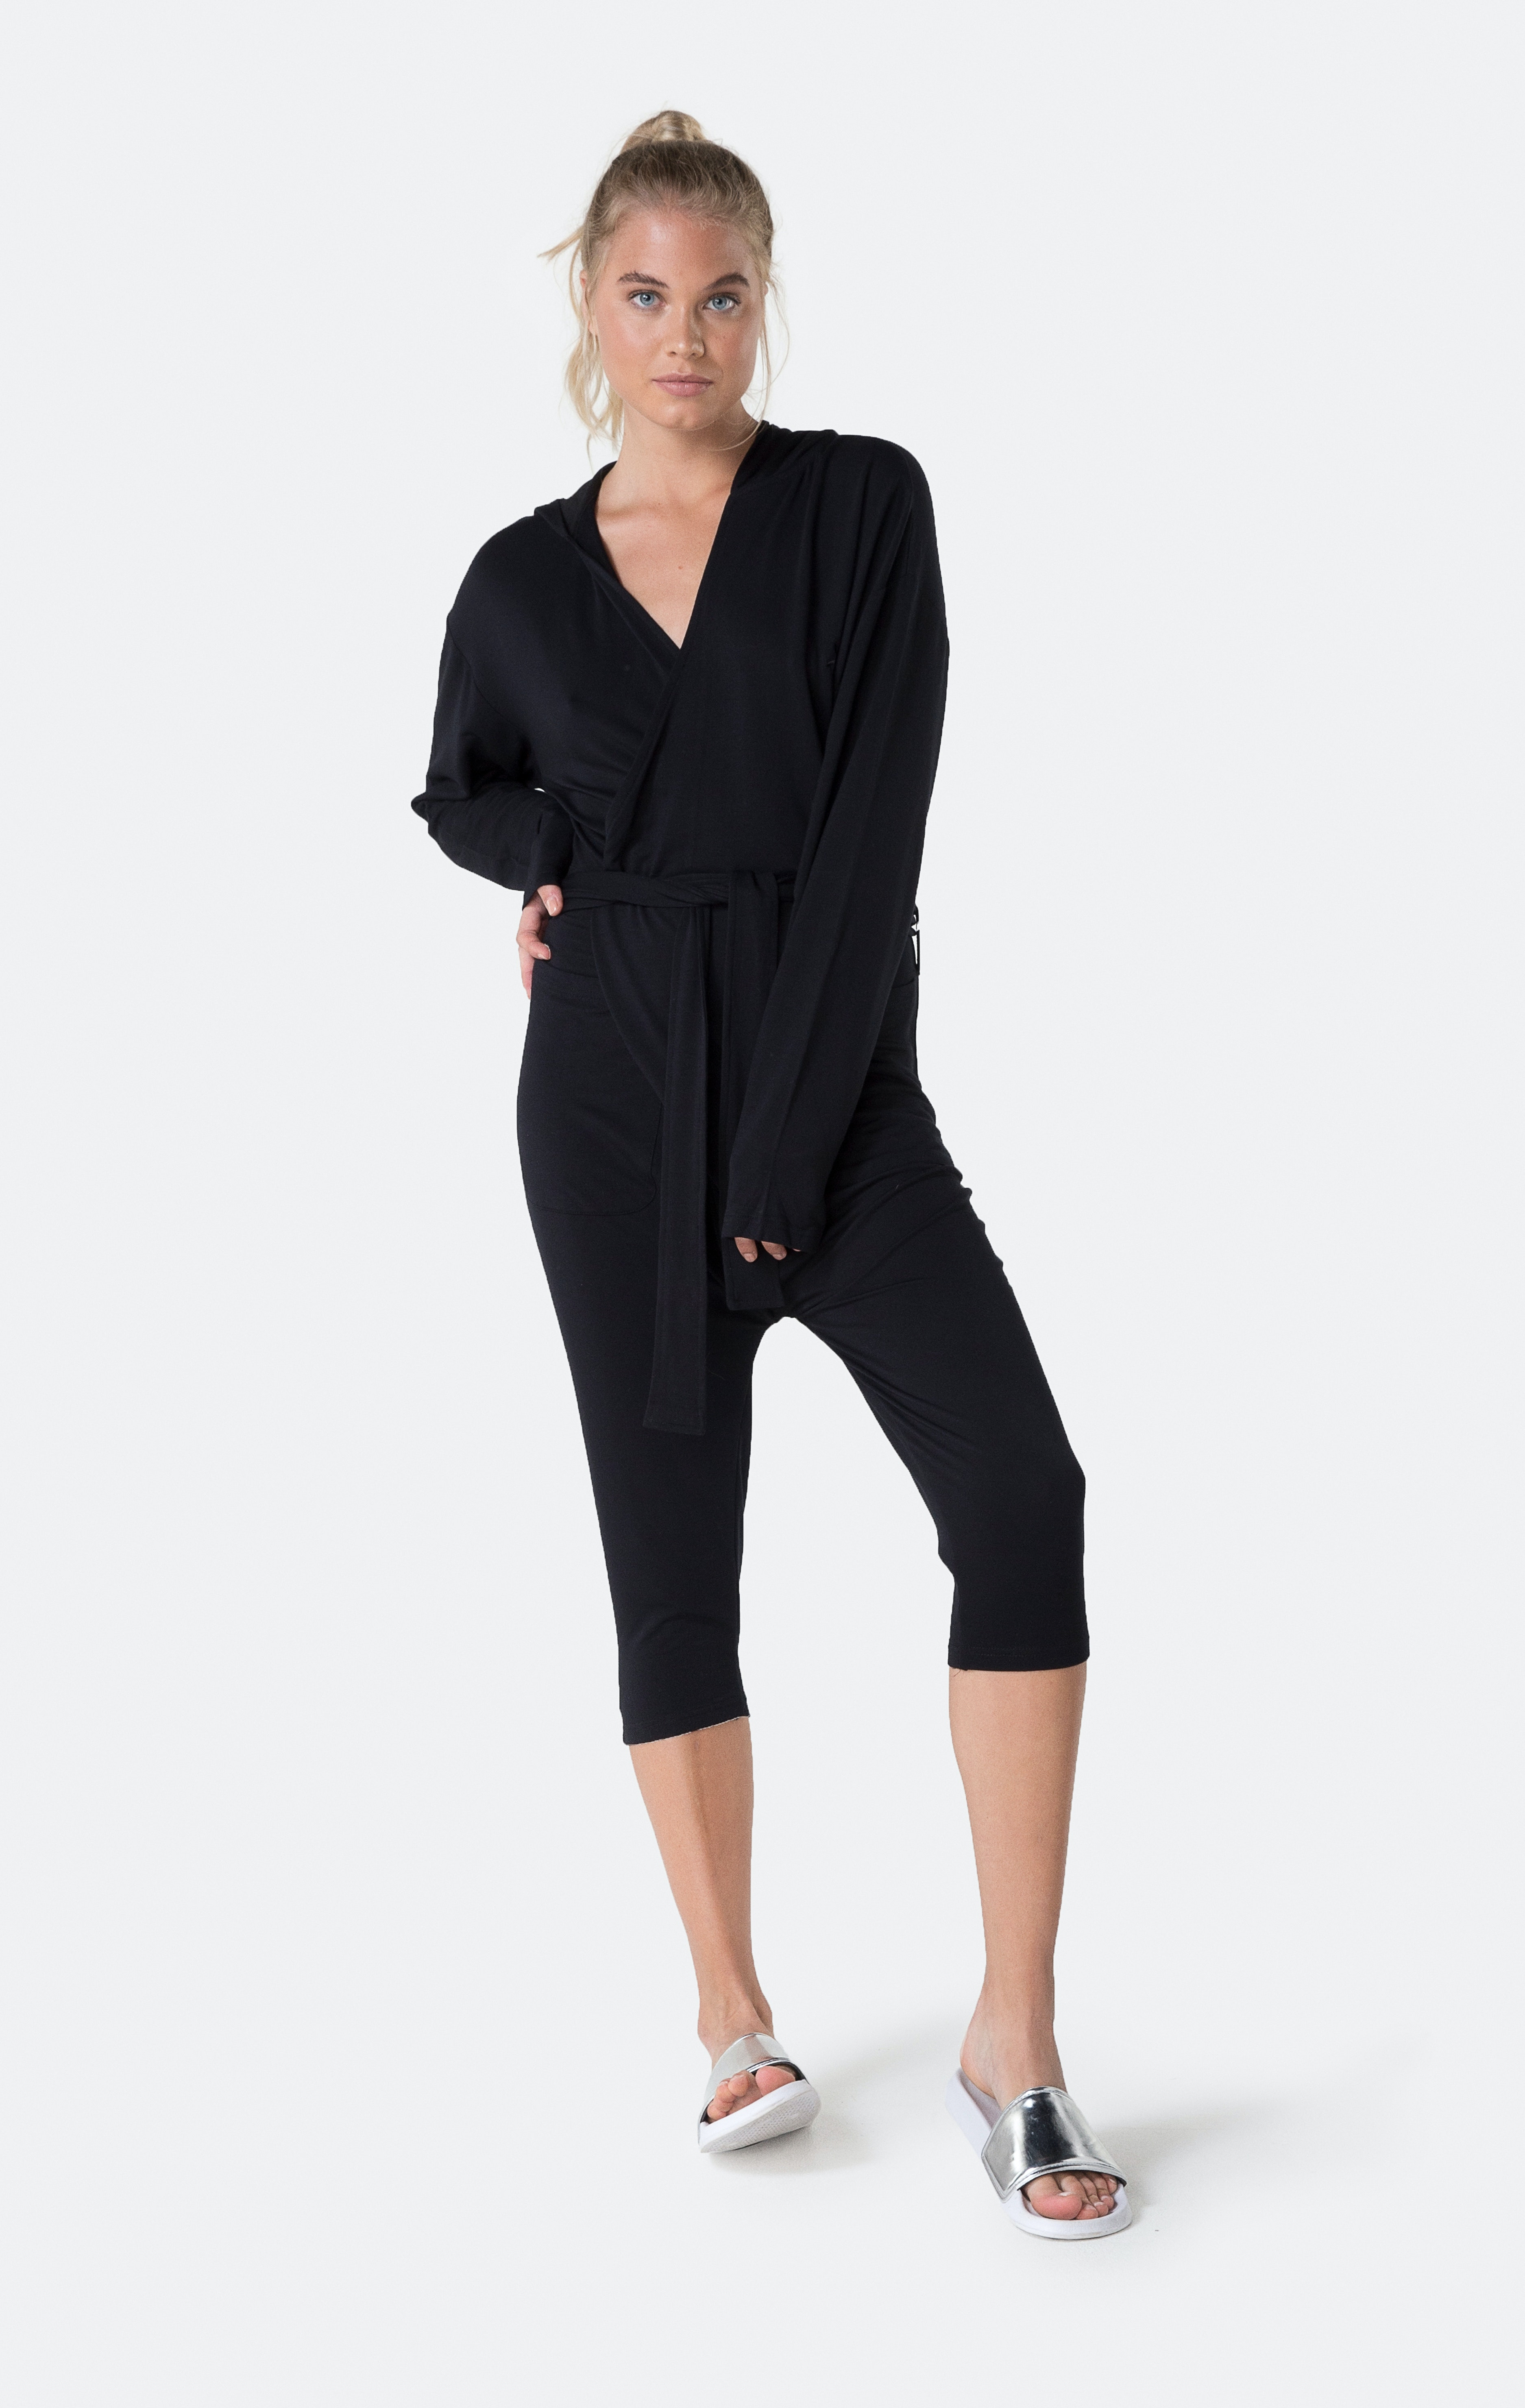 Anjali Loose Fitting OnePiece Womens Jumpsuit Romper in Black Bamboo Fabric